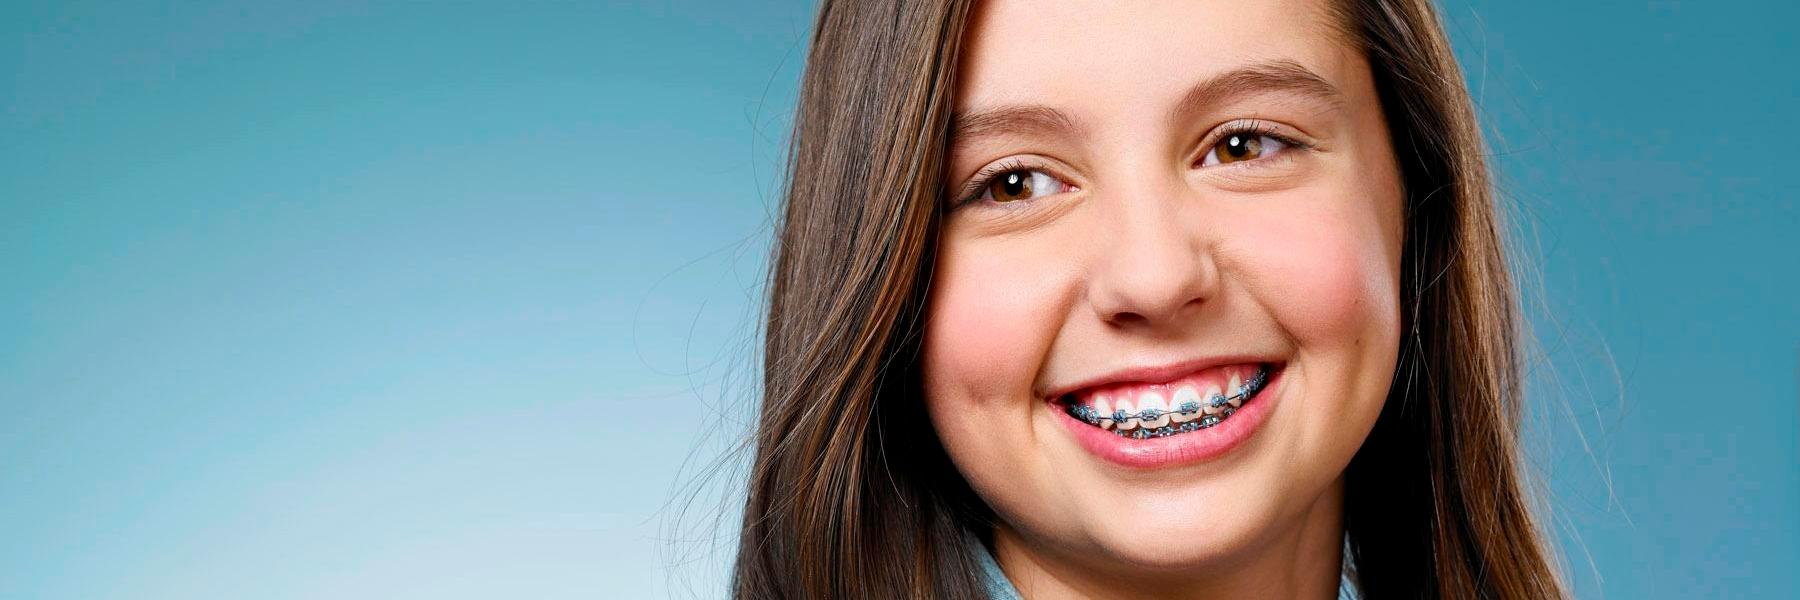 Orthodontics in Santa Monica for All Age